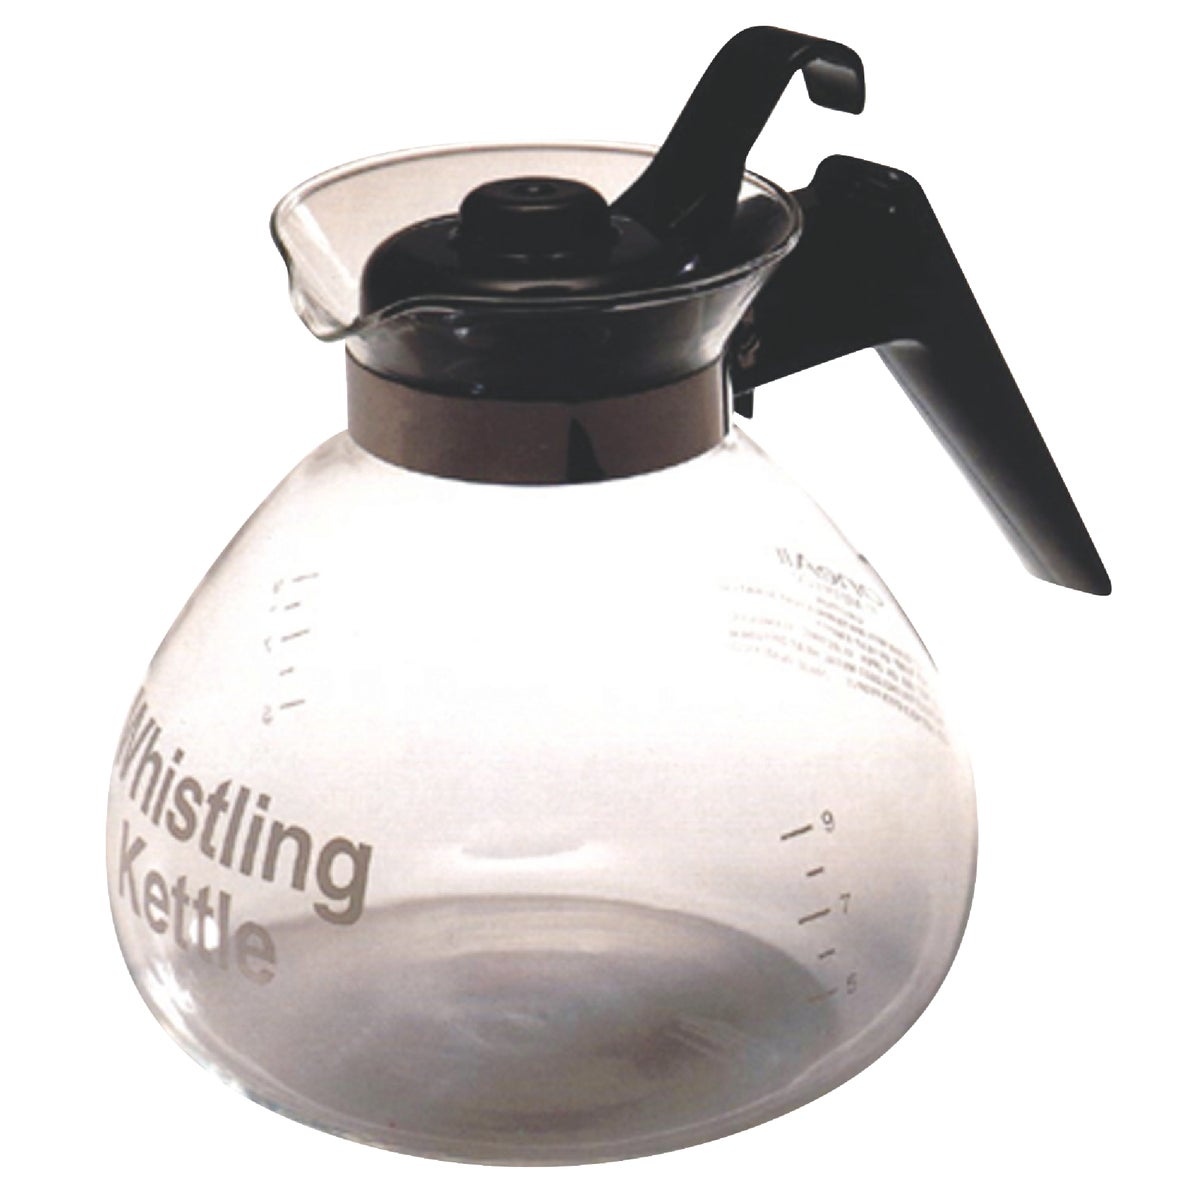 12C GLASS STOVETP KETTLE - WK112 by Medelco Inc